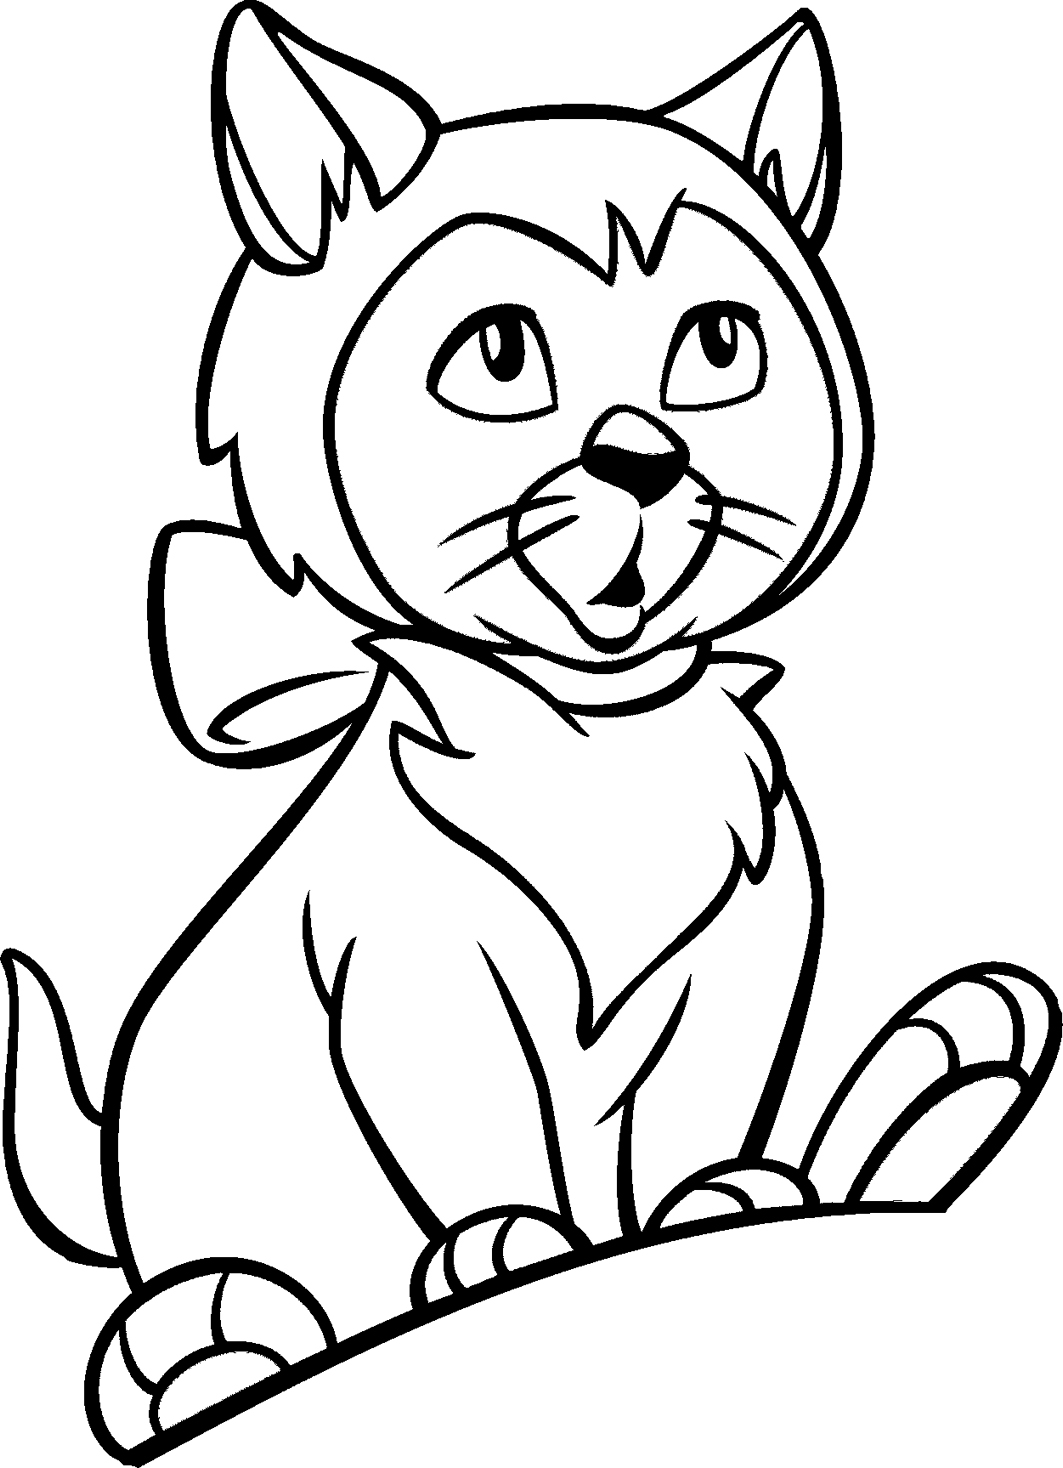 Coloring Pages For Kids: Cat Coloring Pages For Kids